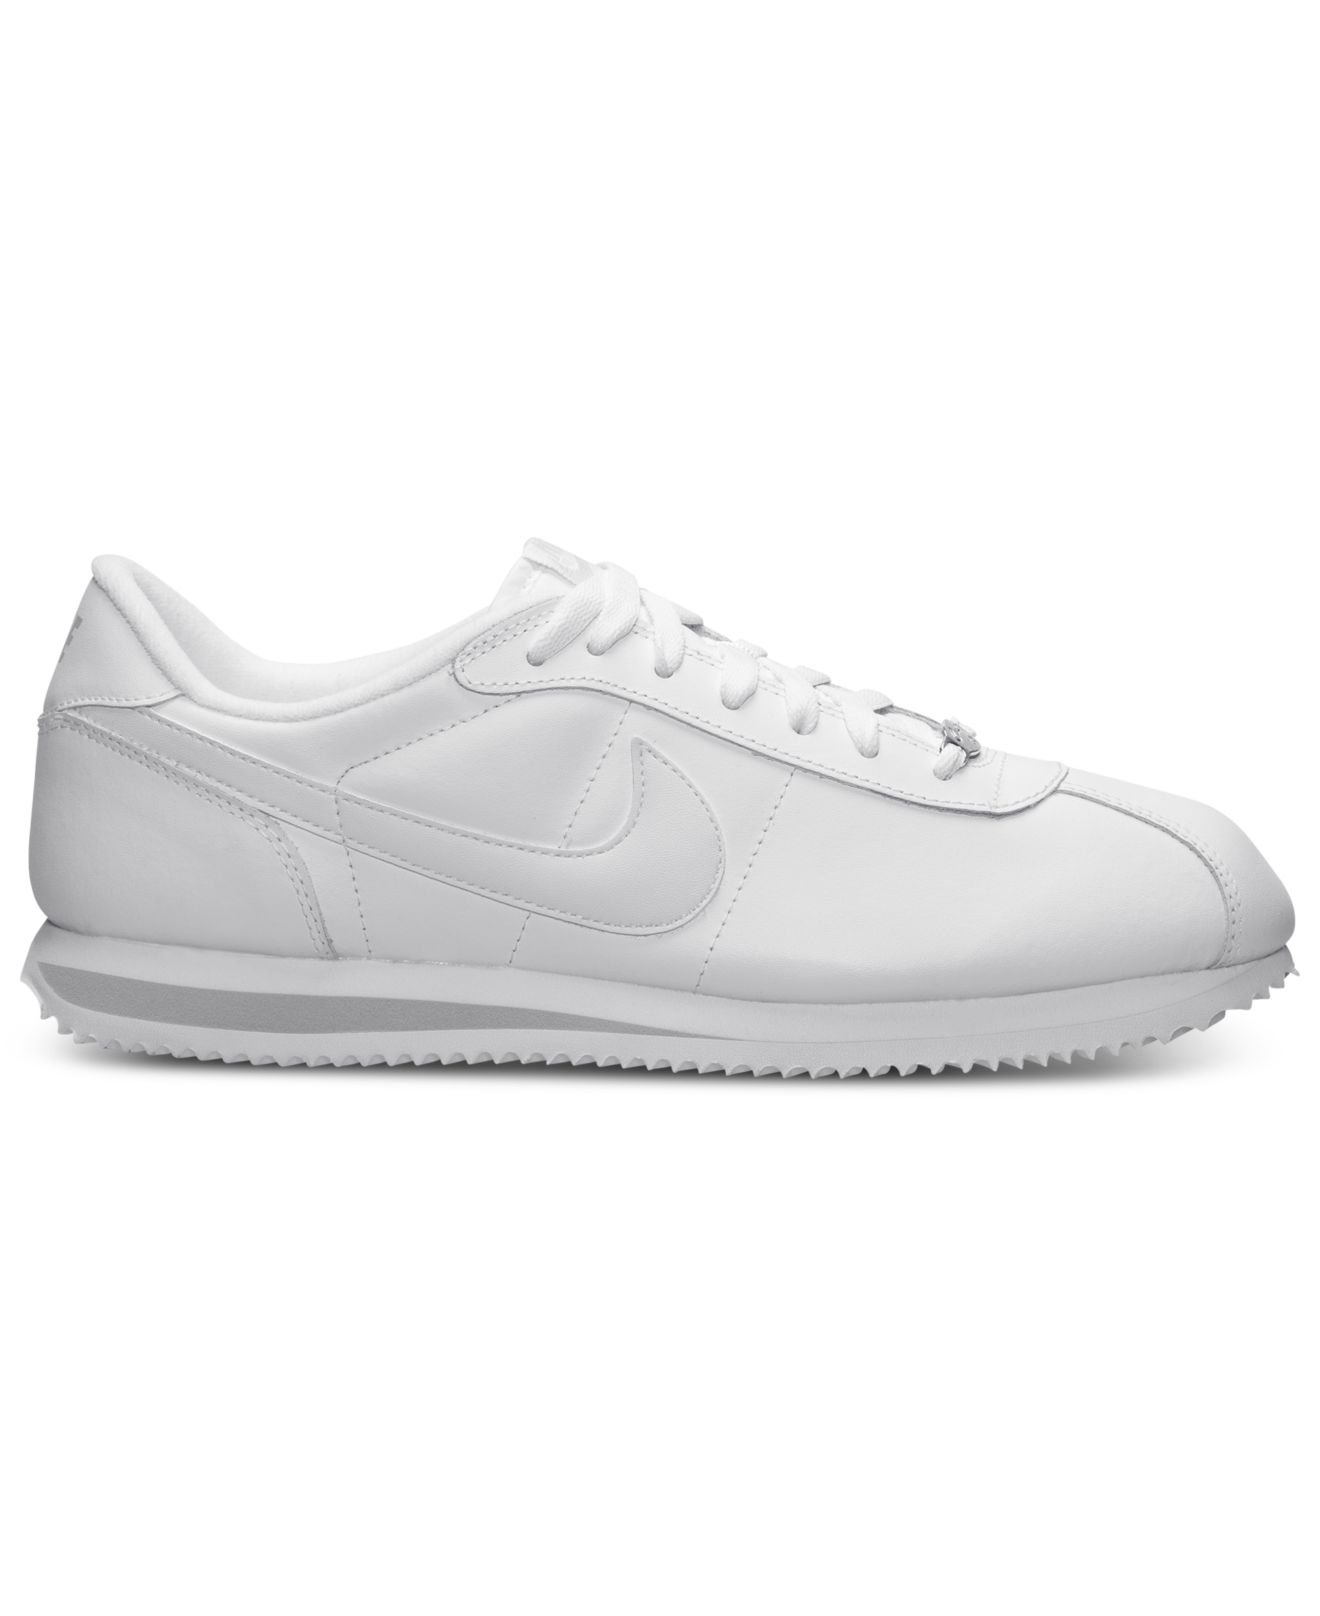 Nike Cortez Ultra Moire Finish Line